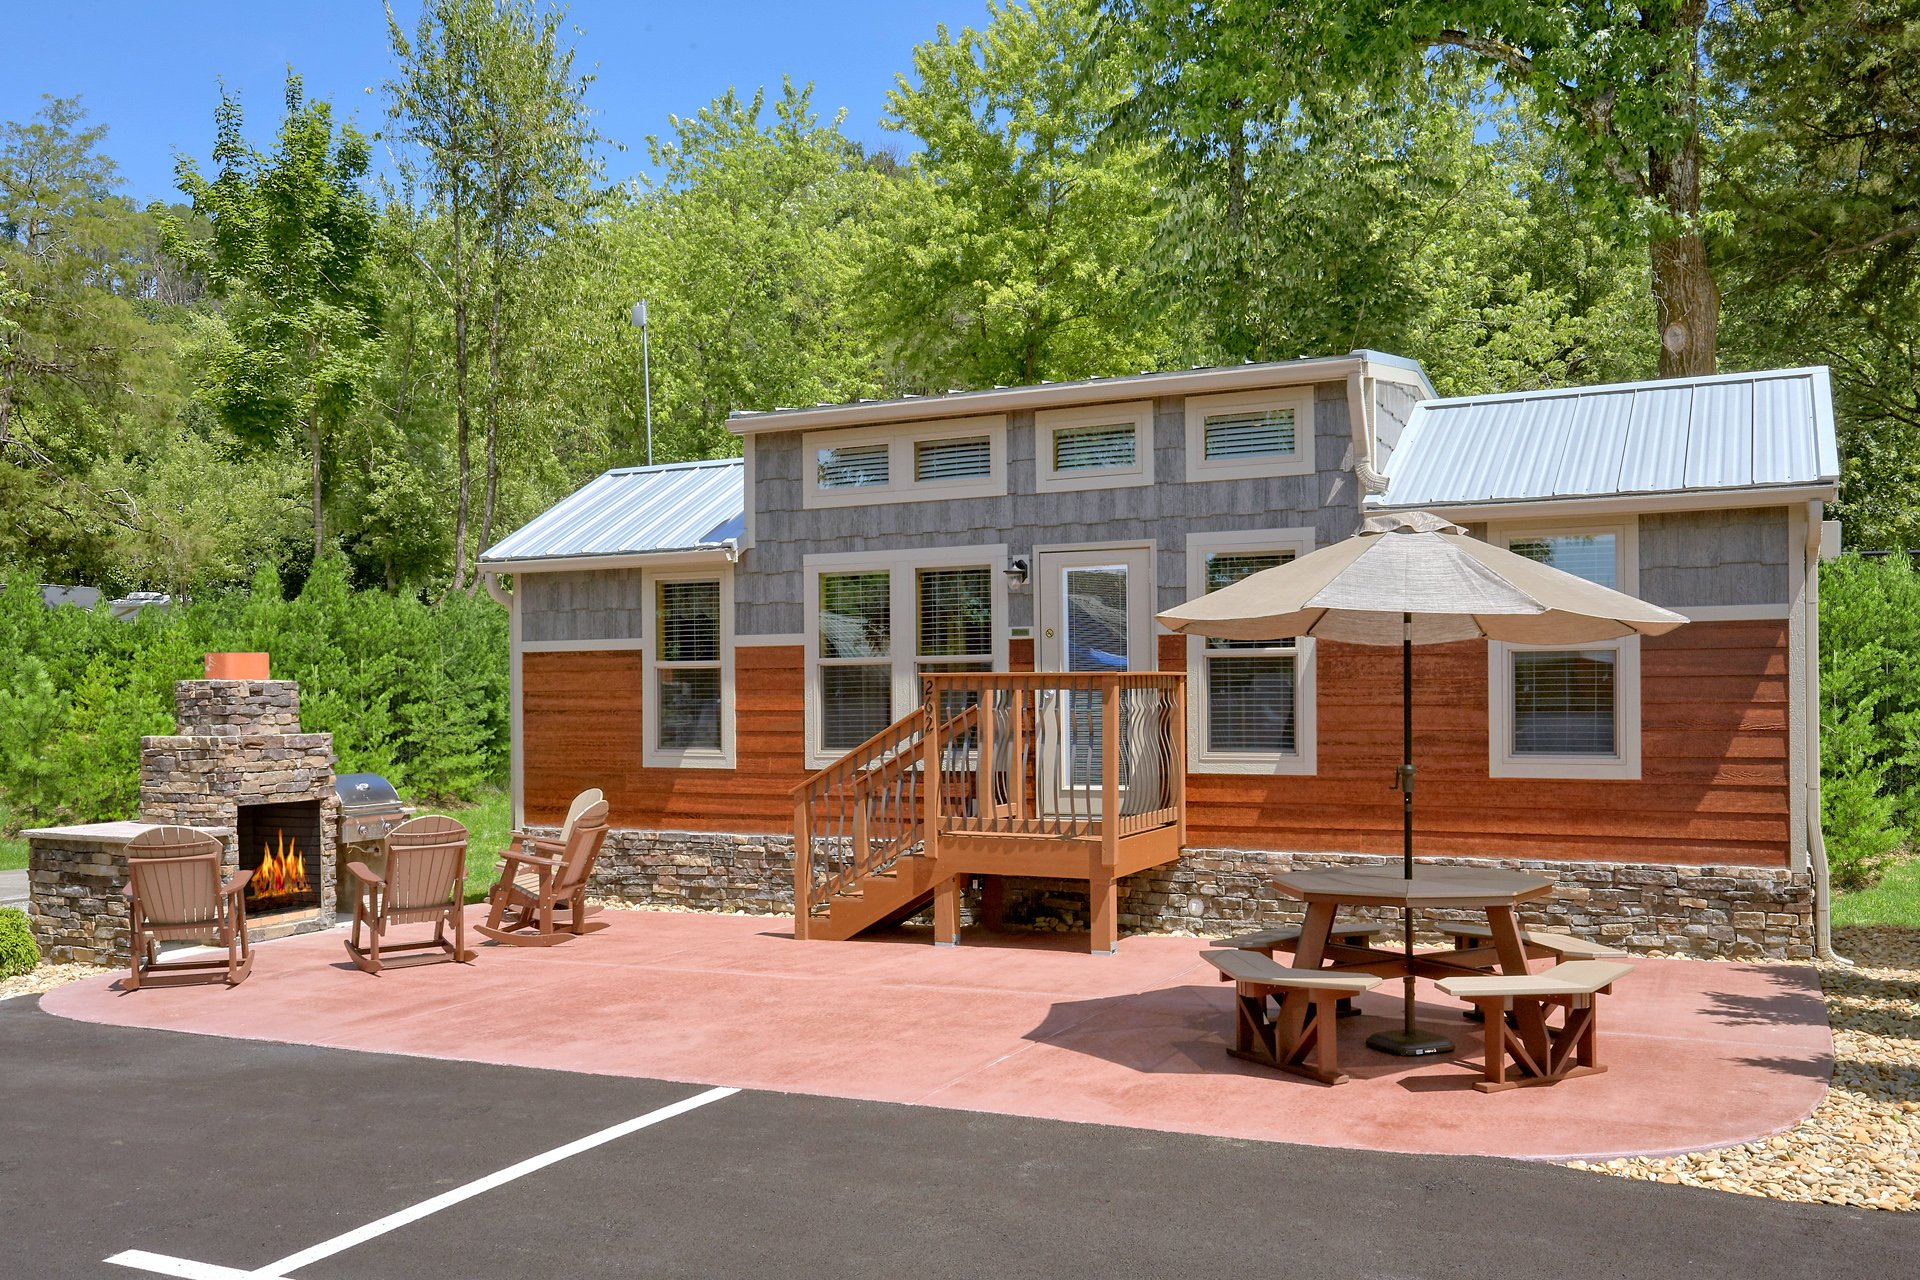 Take a look at our camping cabins located in our RV Park in Pigeon Forge, TN